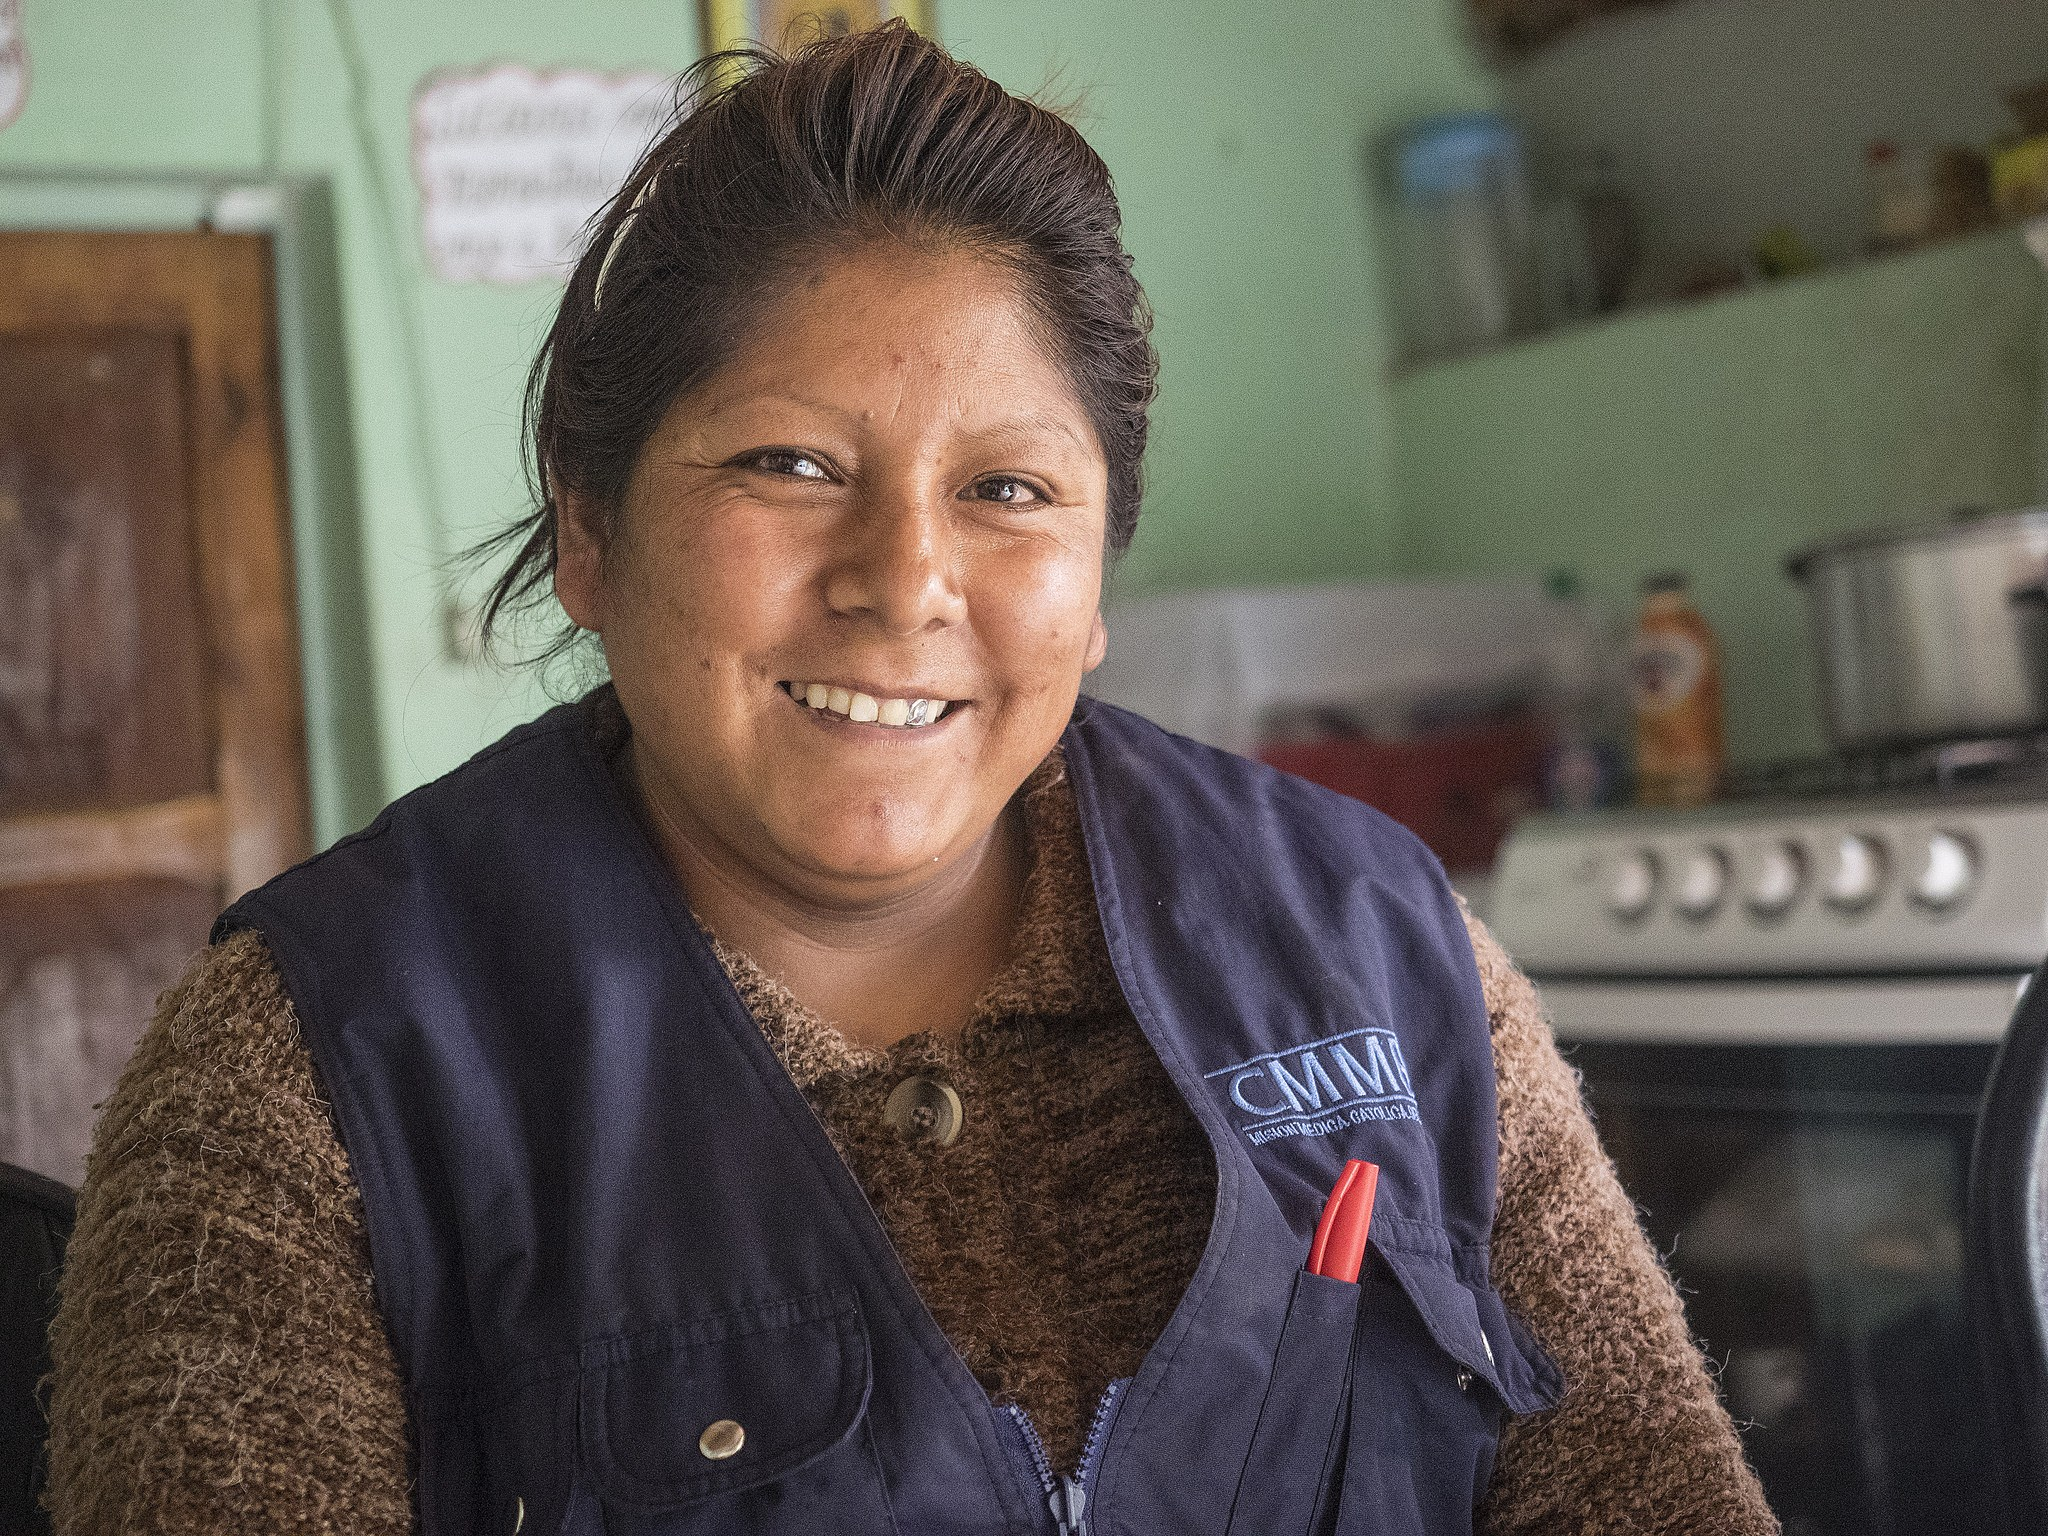 Community Health Worker, Sara, Offers her home as a place as a health center for her community. She ensures that boys and girls receive iron supplements to reduce anemia.